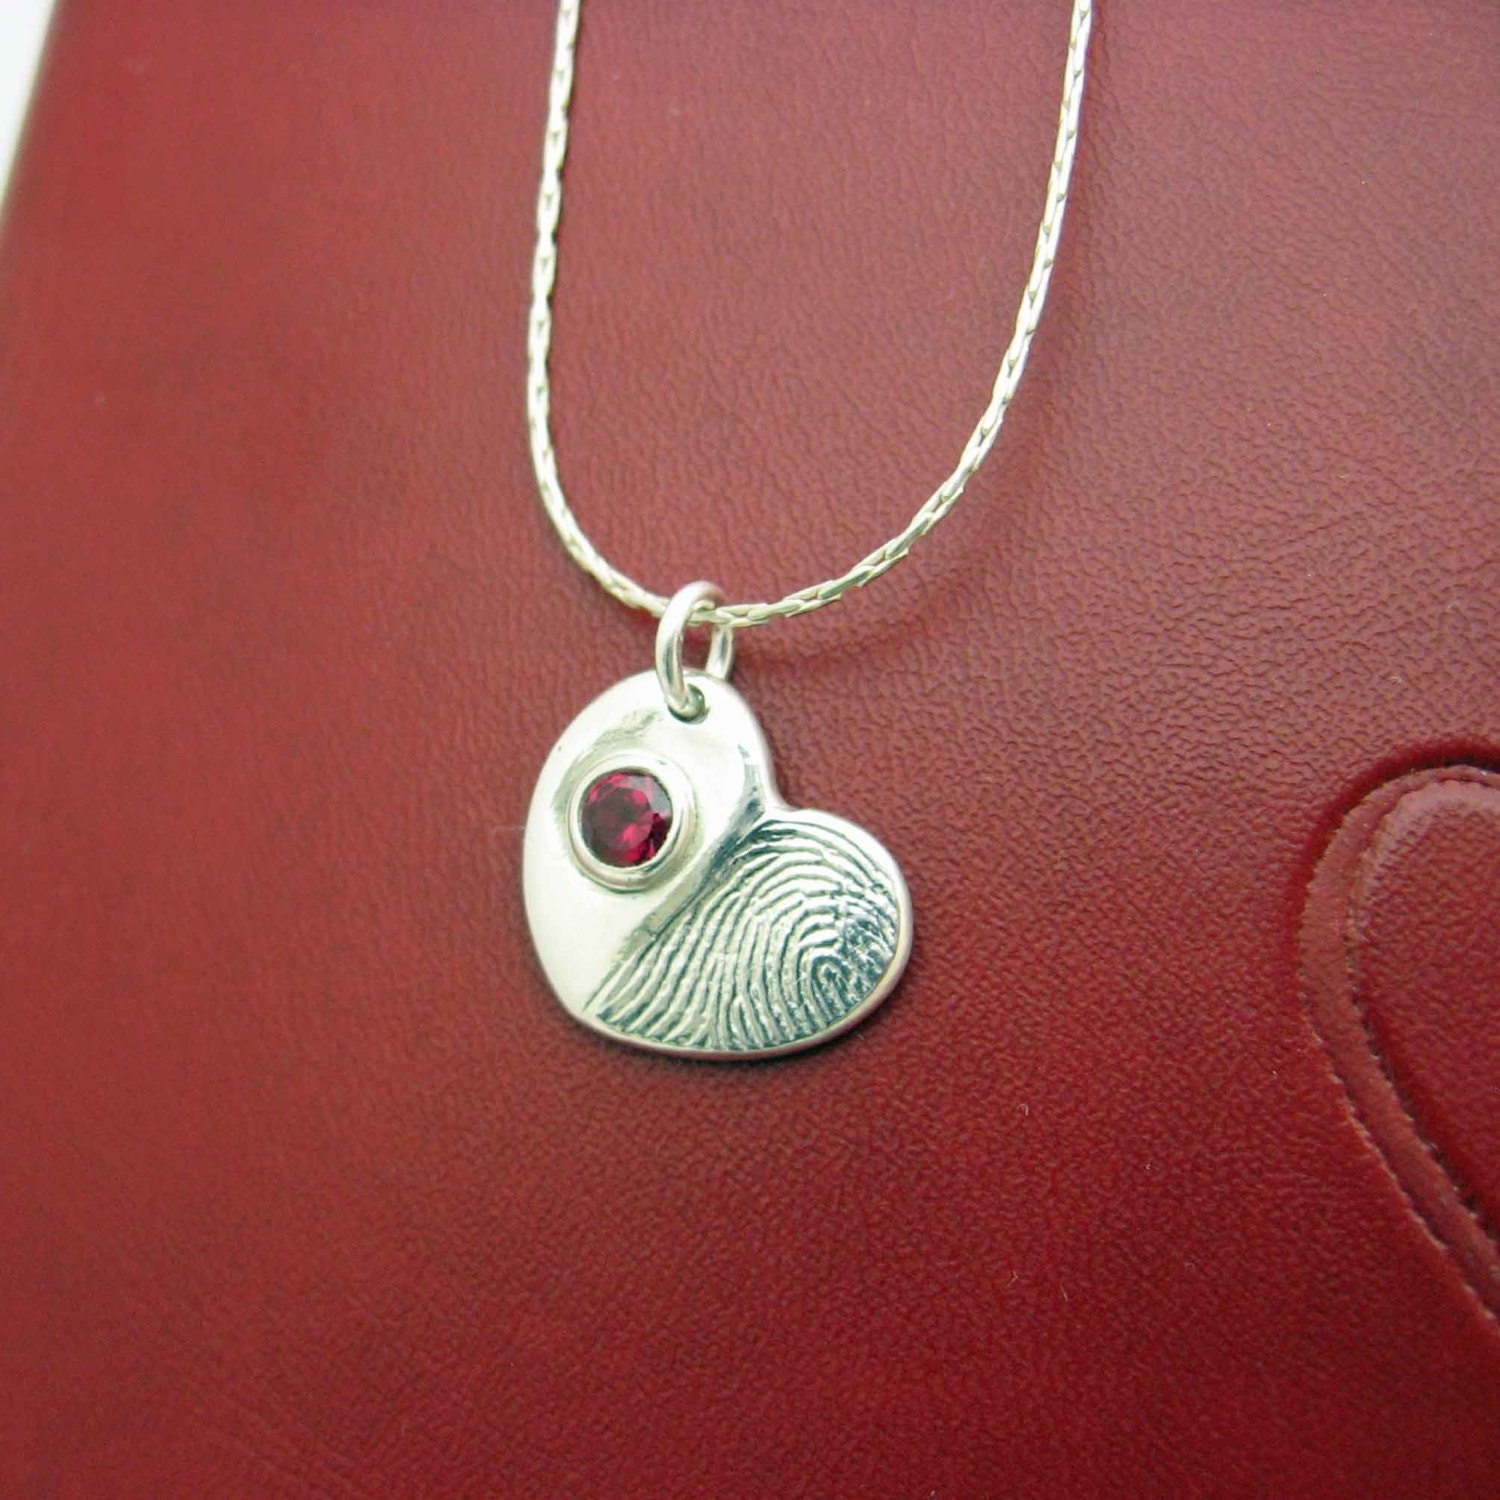 timeless touch fingerprint jewelry fingerprint jewelry silver necklace by 9242